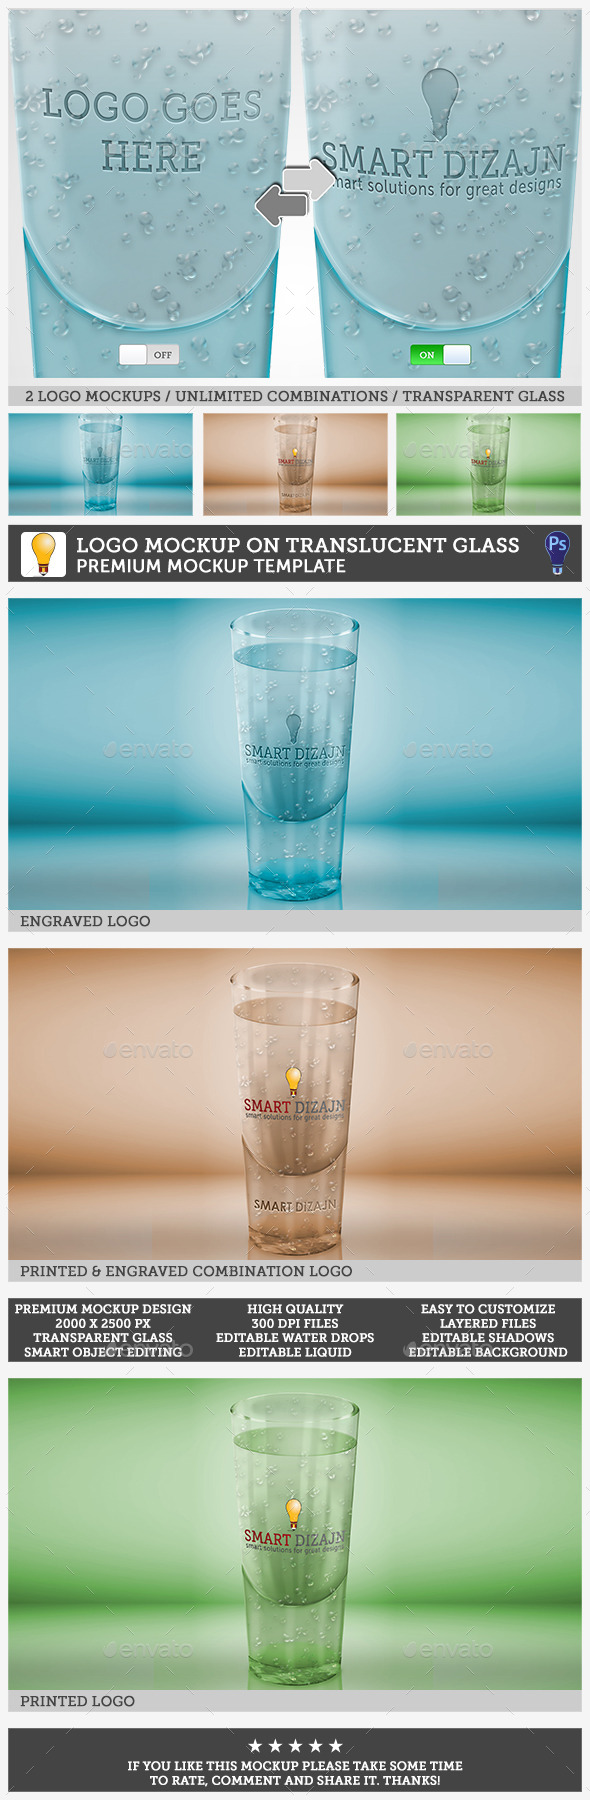 Logo Mockup on Translucent Glass Object